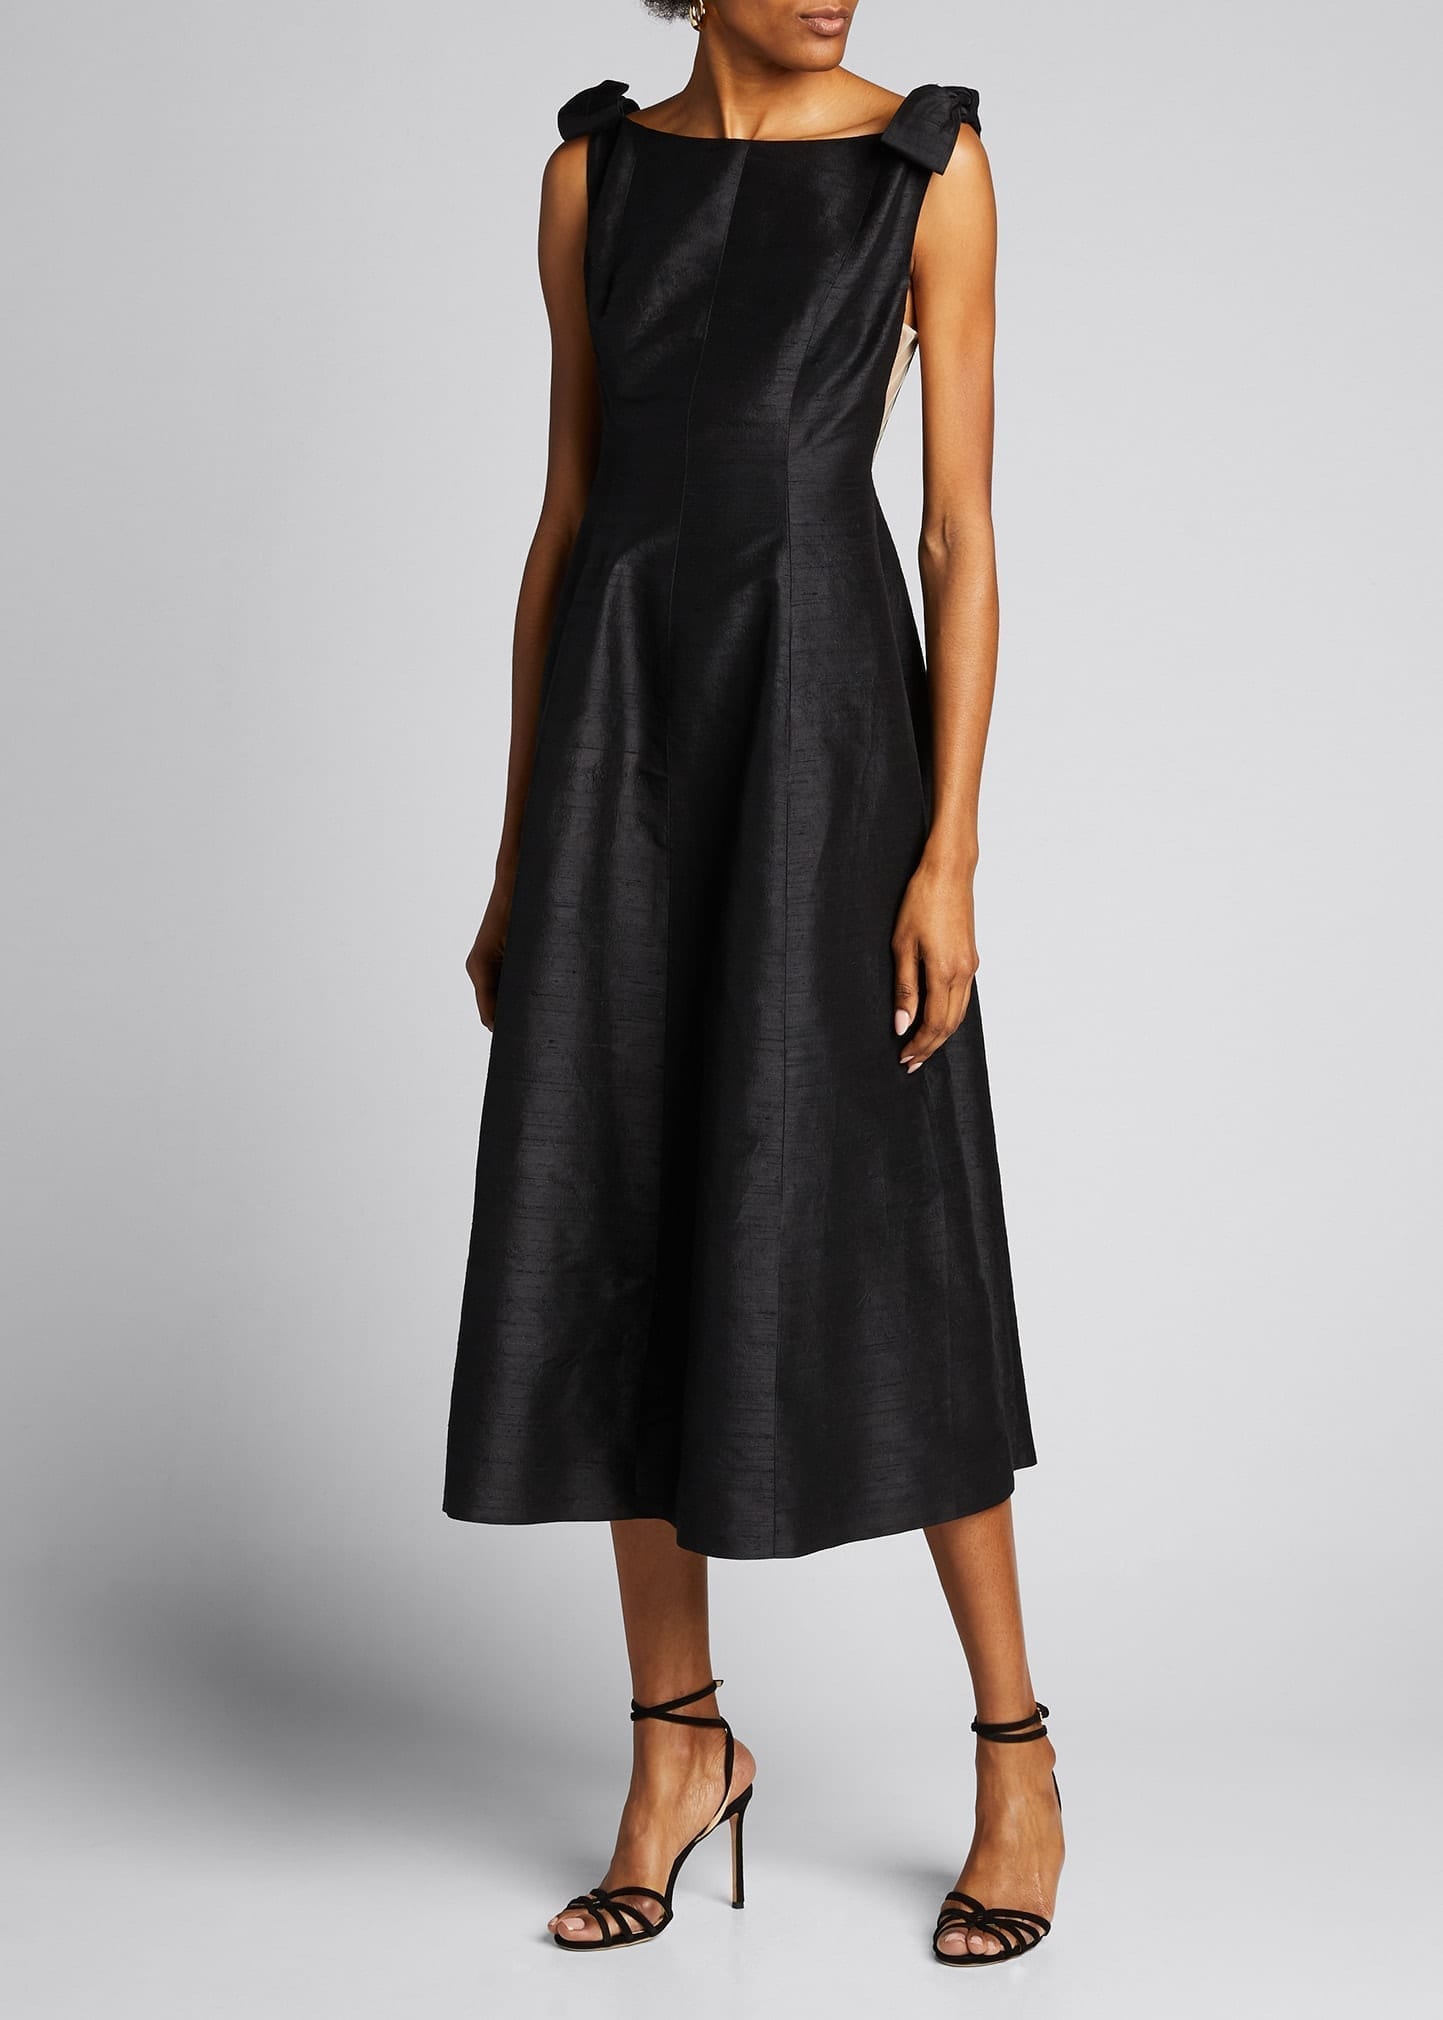 MARKARIAN Bowed Shoulder Satin Dress